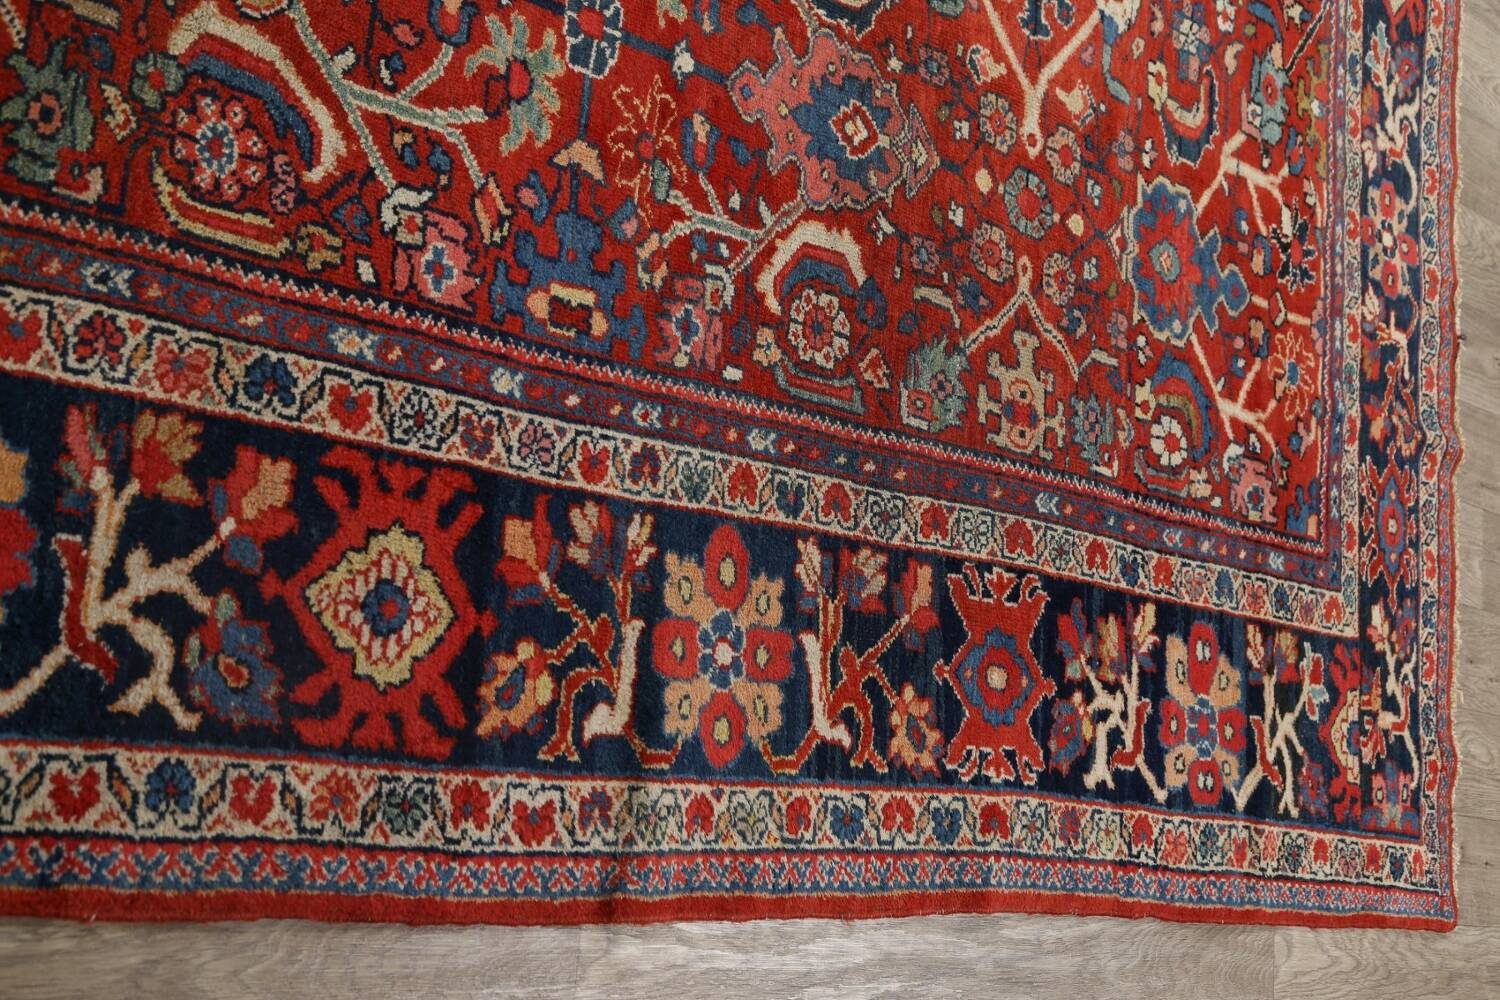 Antique Vegetable Dye Sultanabad Persian Area Rug 9x12 image 12